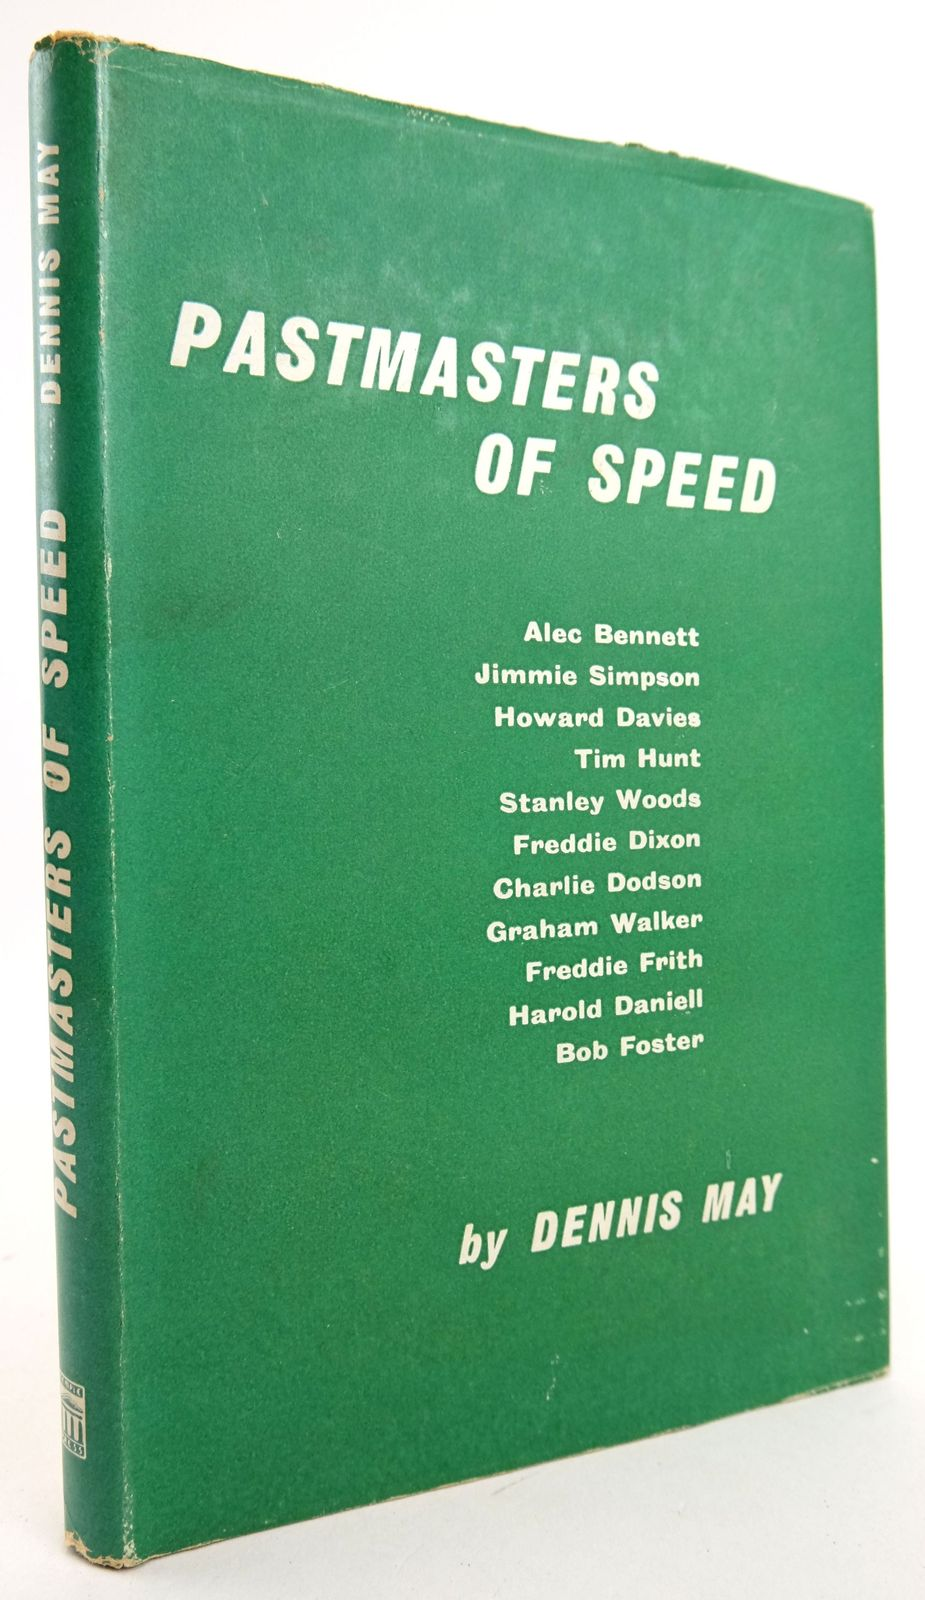 Photo of PASTMASTERS OF SPEED- Stock Number: 1819453